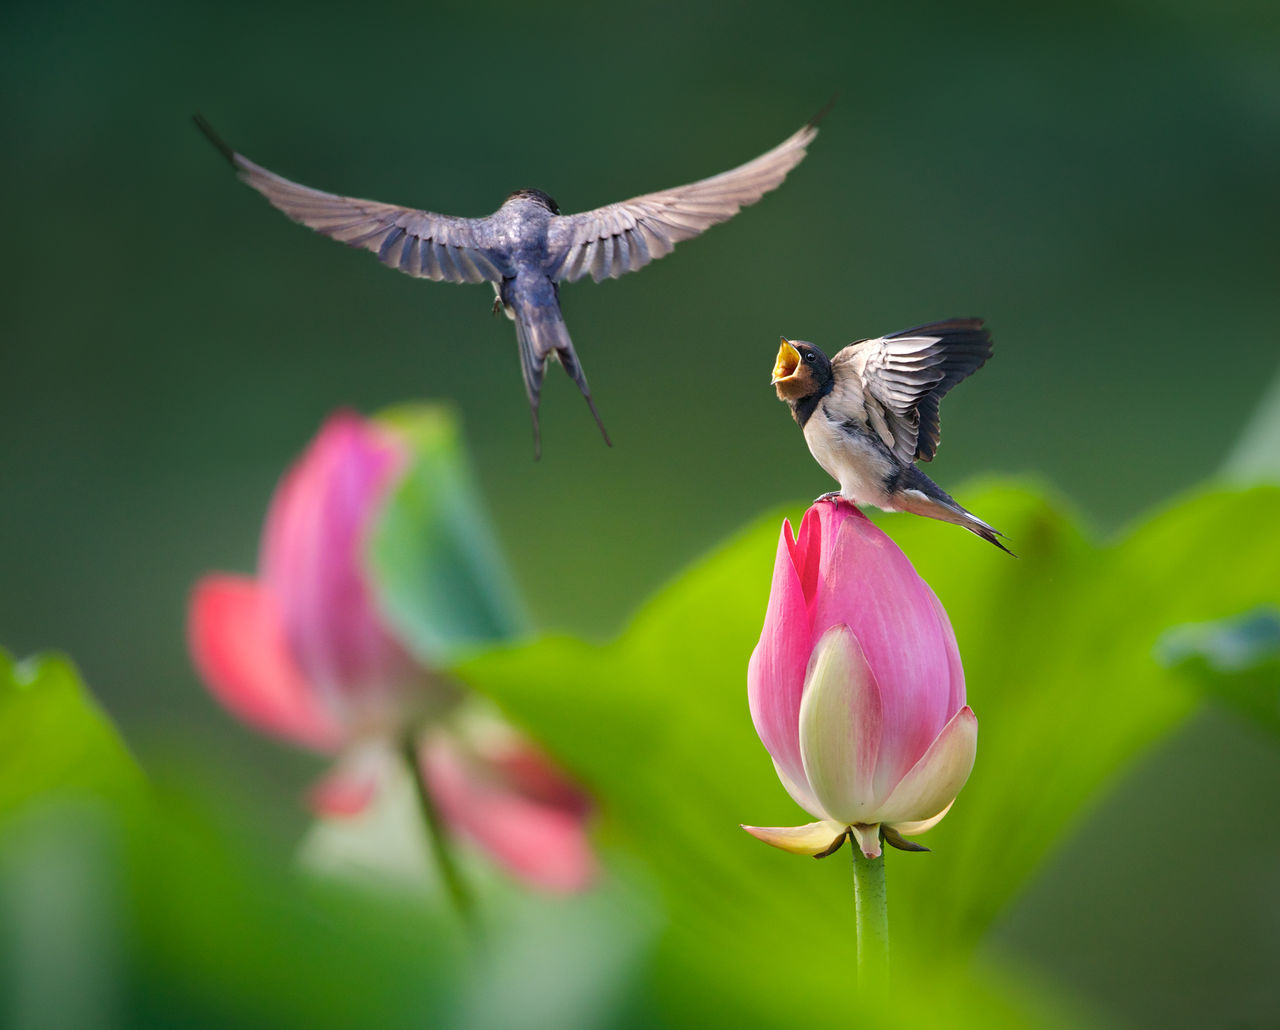 Baby swallow stand in a lotus to wait its mom Baby Flowers Flying Green Lotus Love Nature Nature, Flowers Pink Summer Swallow Showcase June The Great Outdoors - 2016 EyeEm Awards